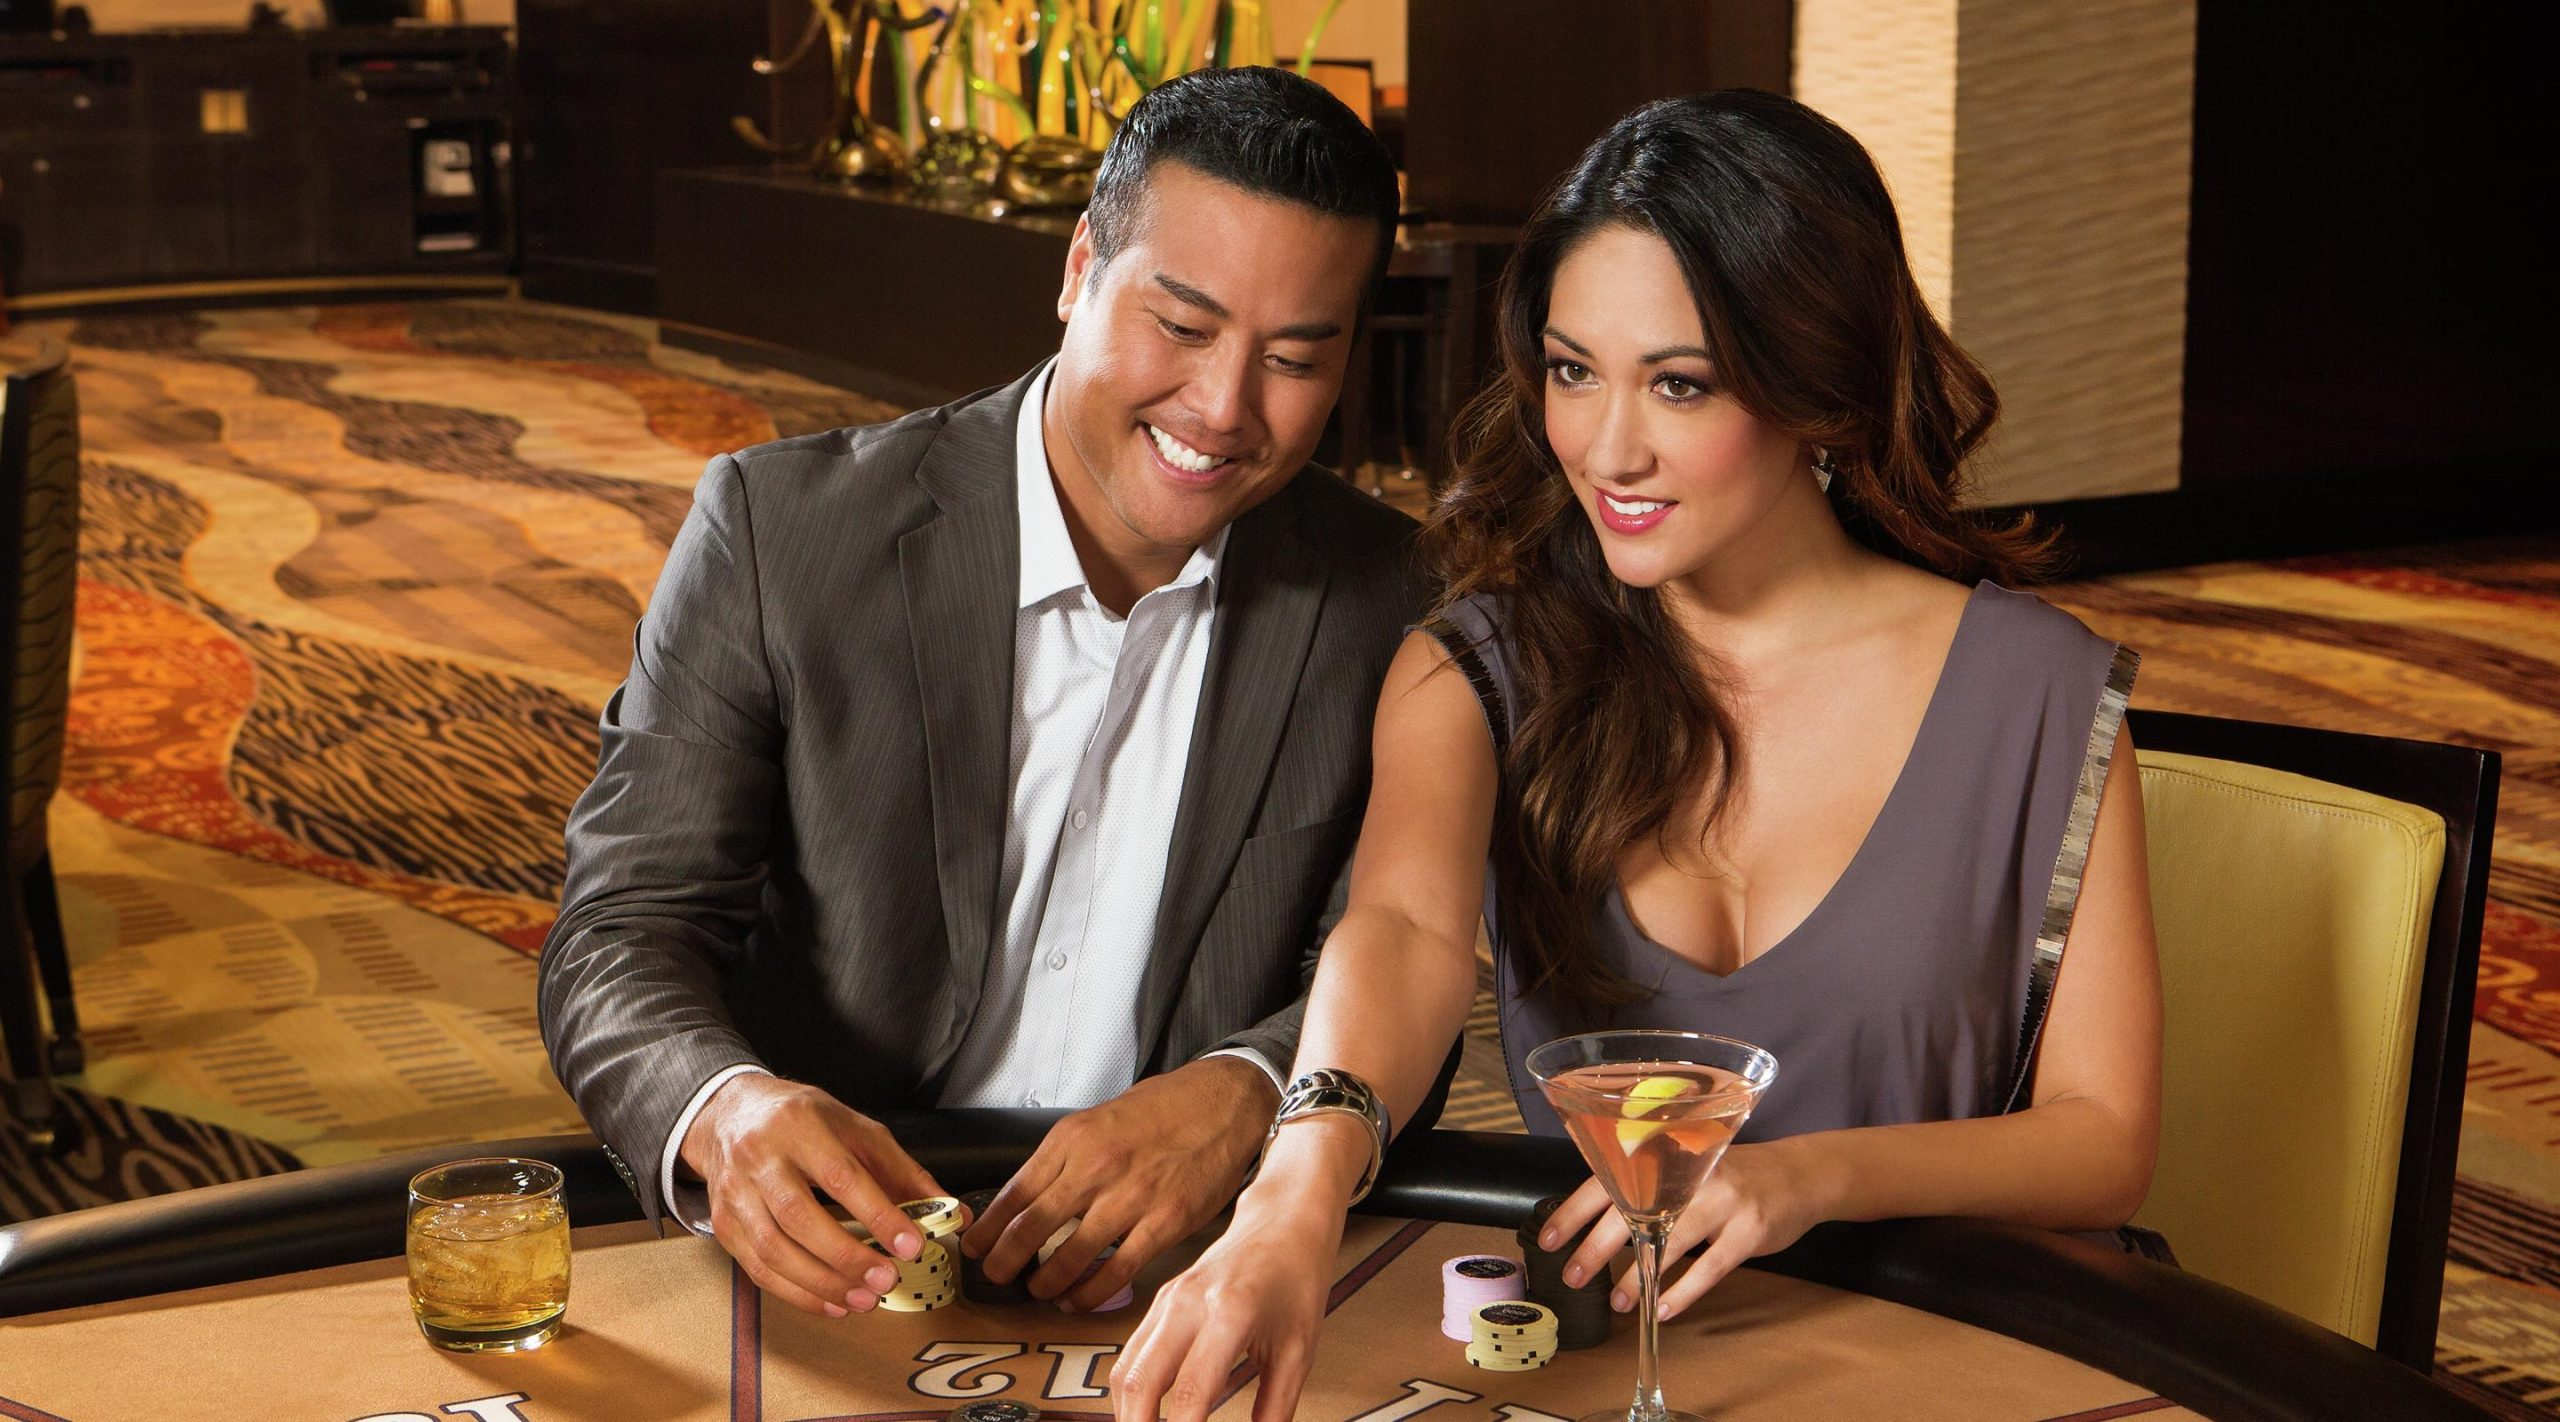 What are the reasons for using websites online casino?